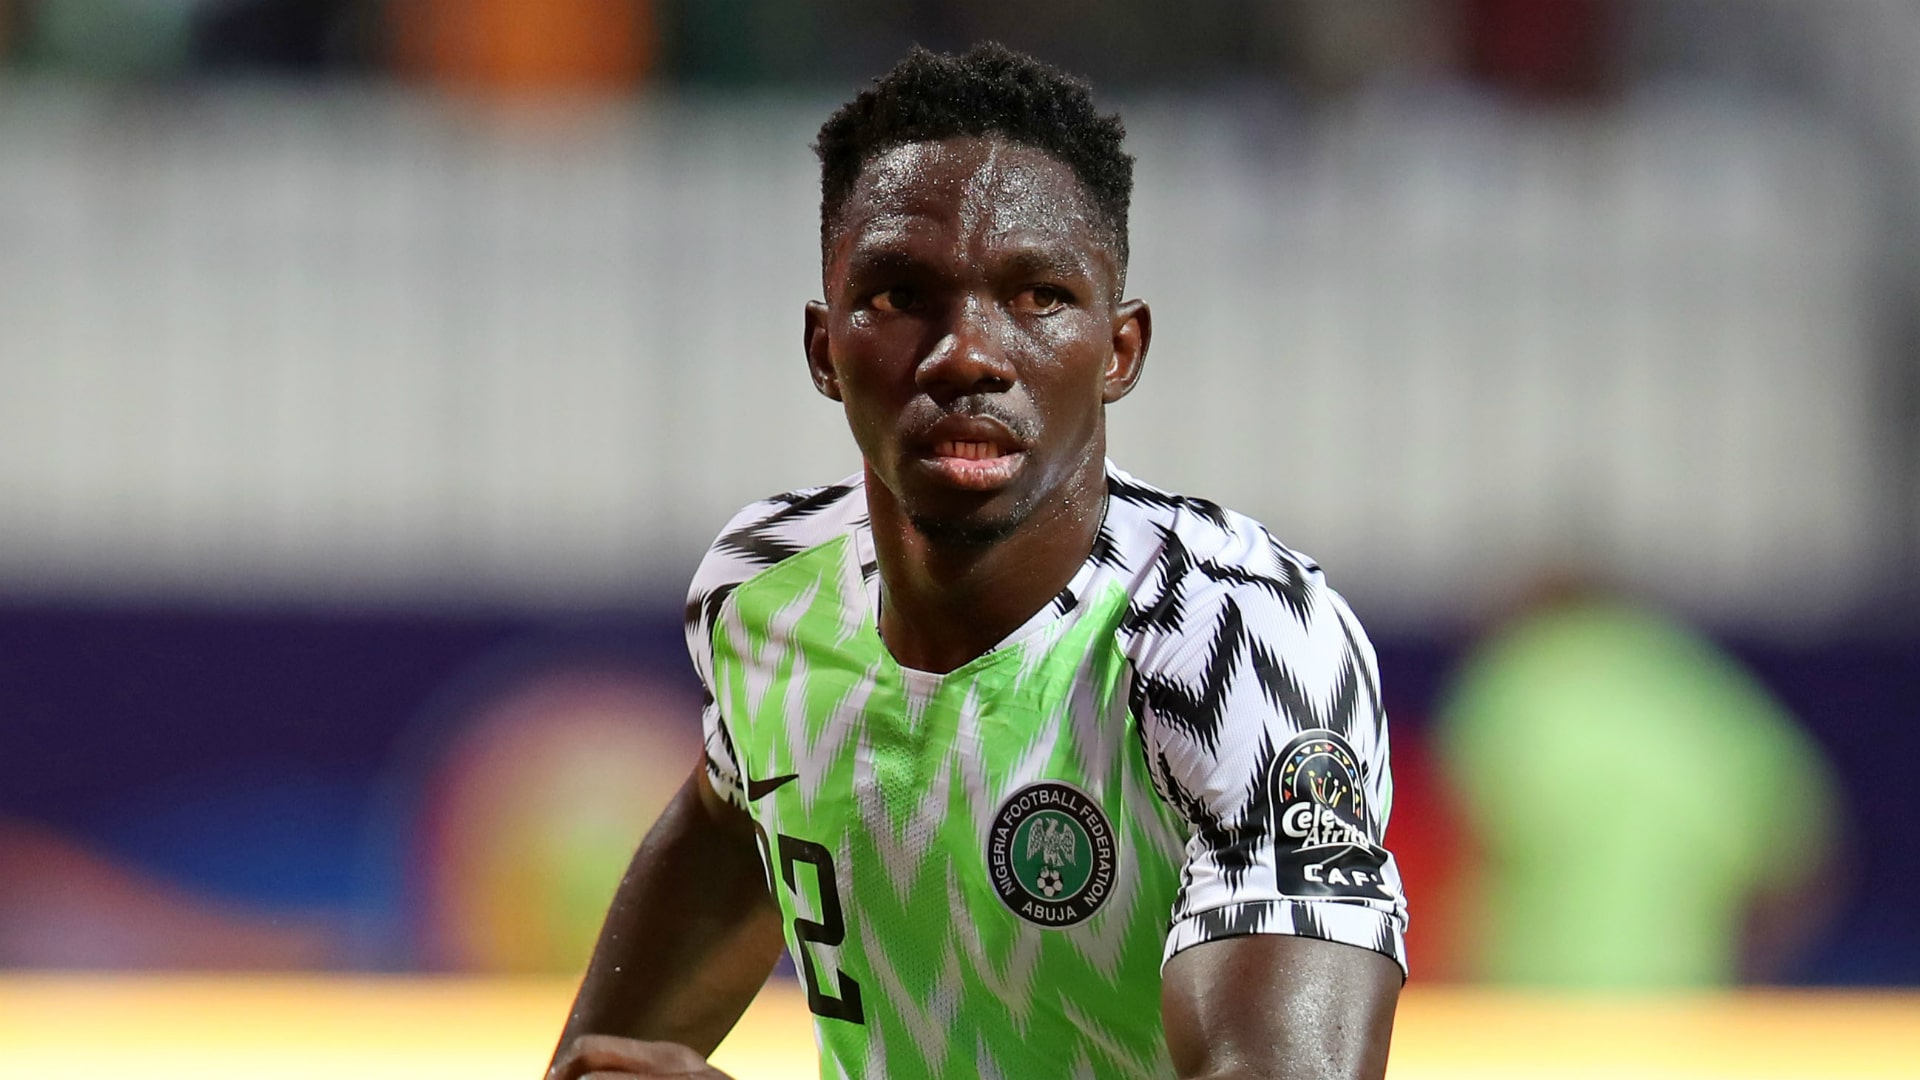 'I Want To Compete For Nigeria At Olympic Games' -Omeruo